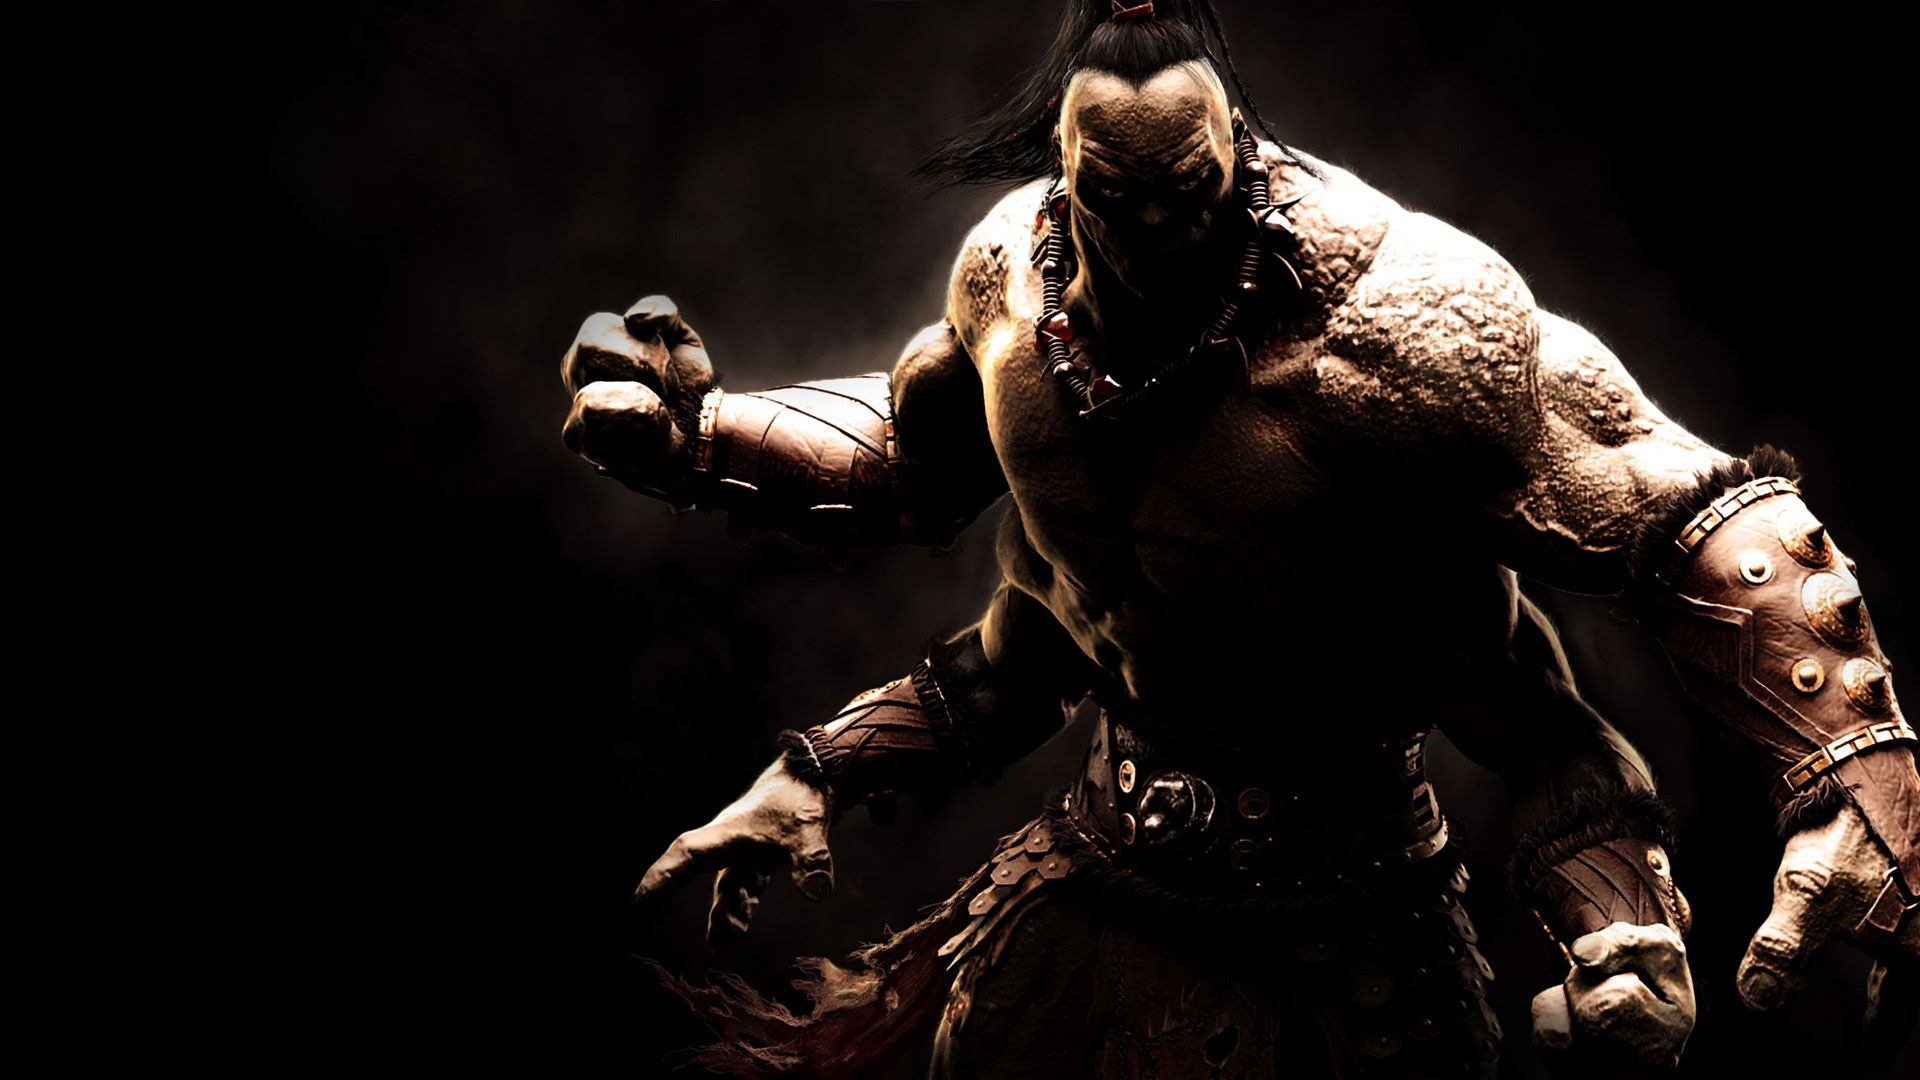 mortal-kombat-x-goro-dlc-steam-cd-key-satin-al-durmaplay.jpg